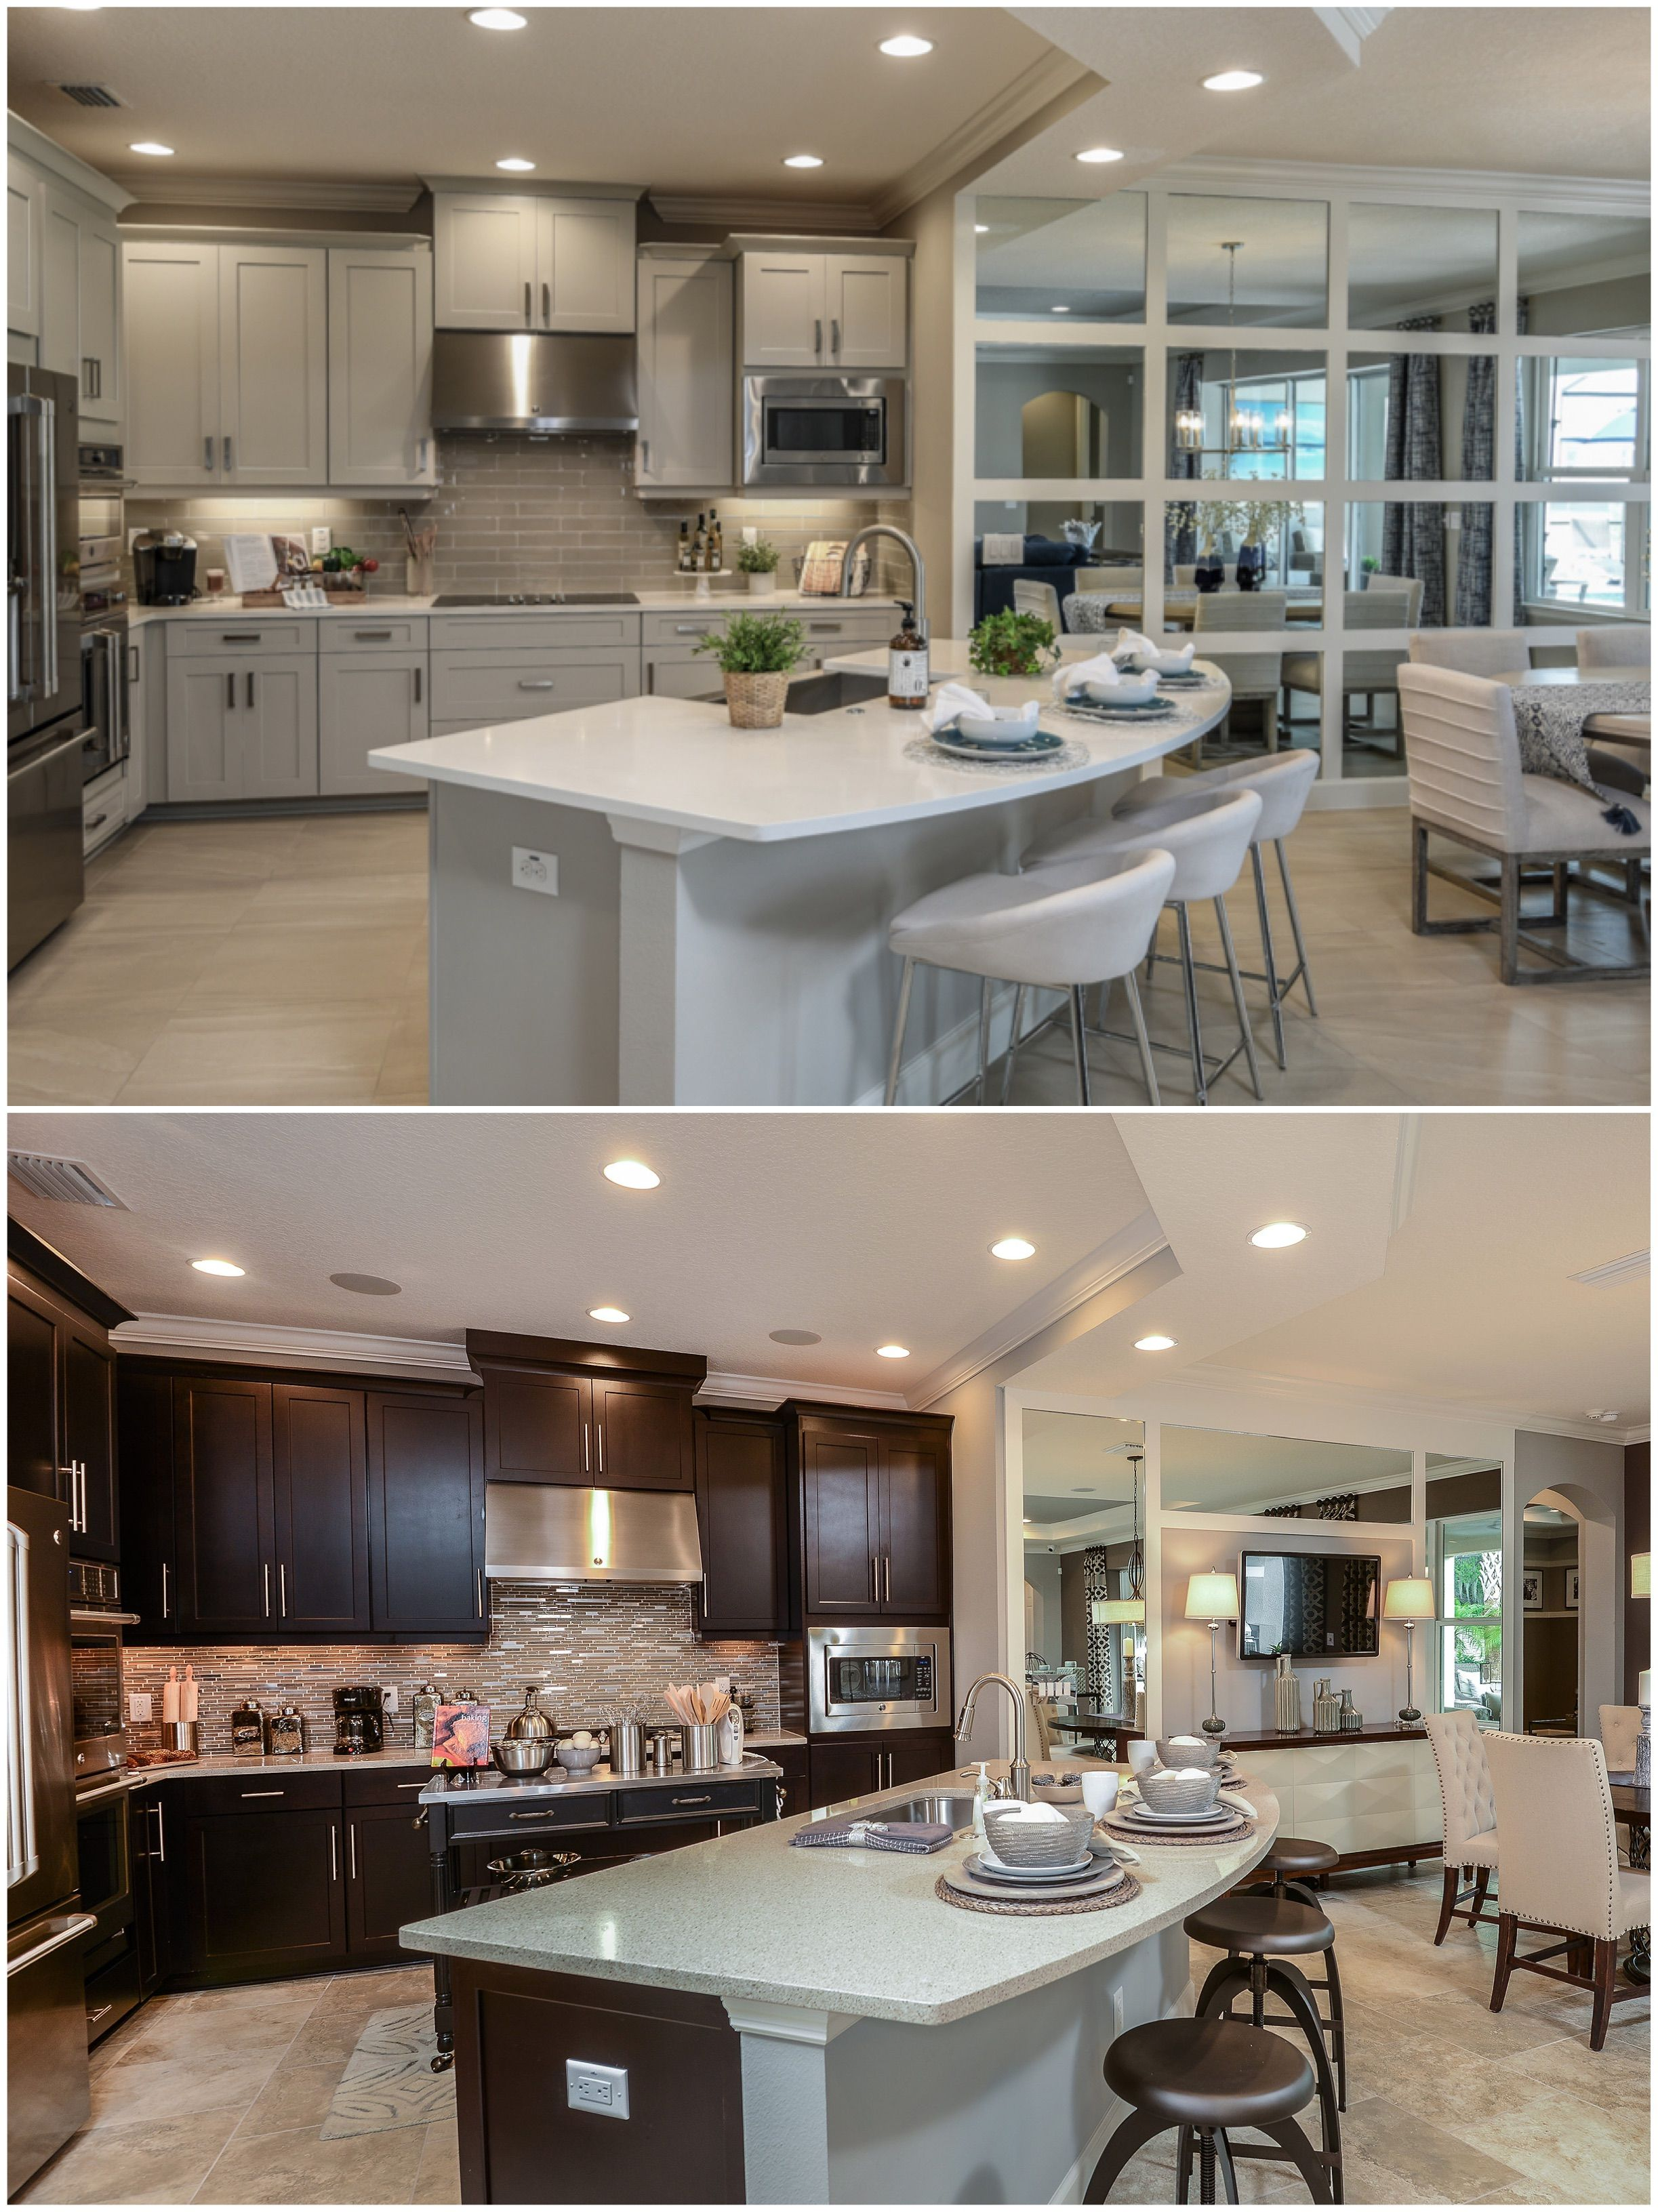 Light Cabinets Or Dark Which Are Your Favorite Wesleychapel